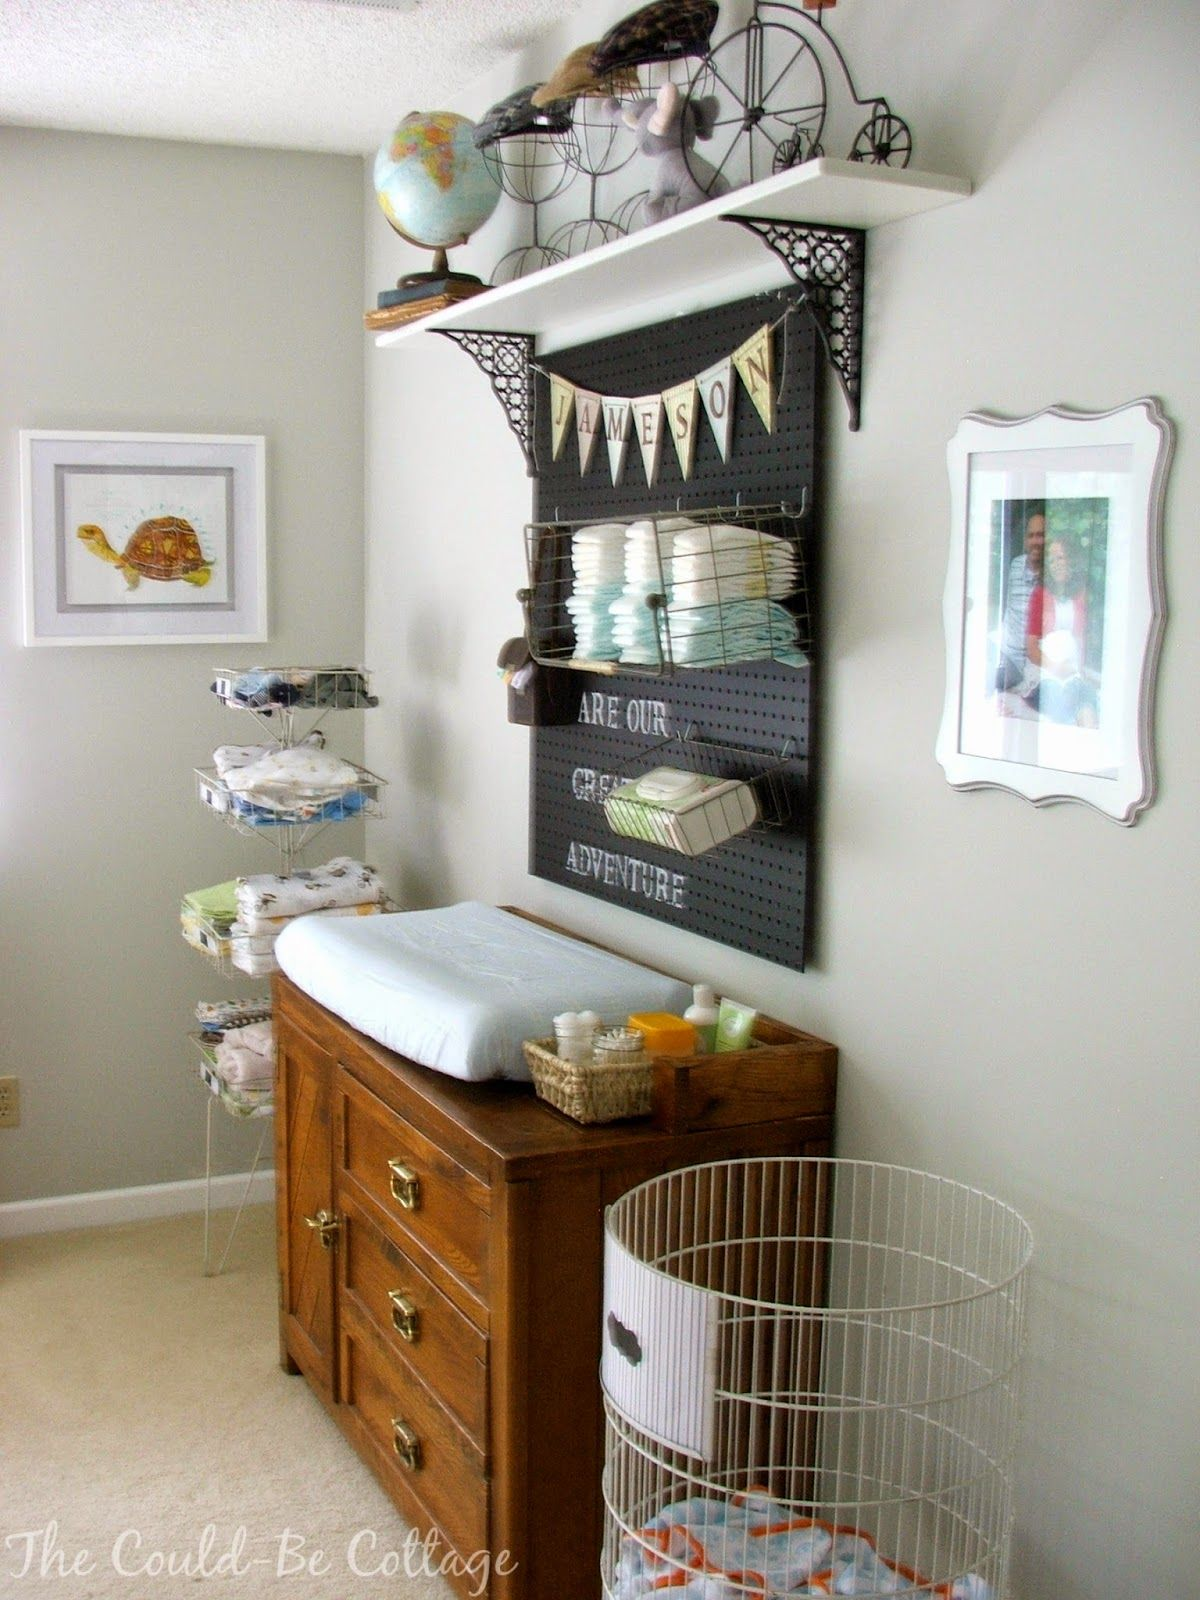 Boy 063 Jpg 1 200 1 600 Pixels Diaper Changing Table Changing Table Baby Changing Station